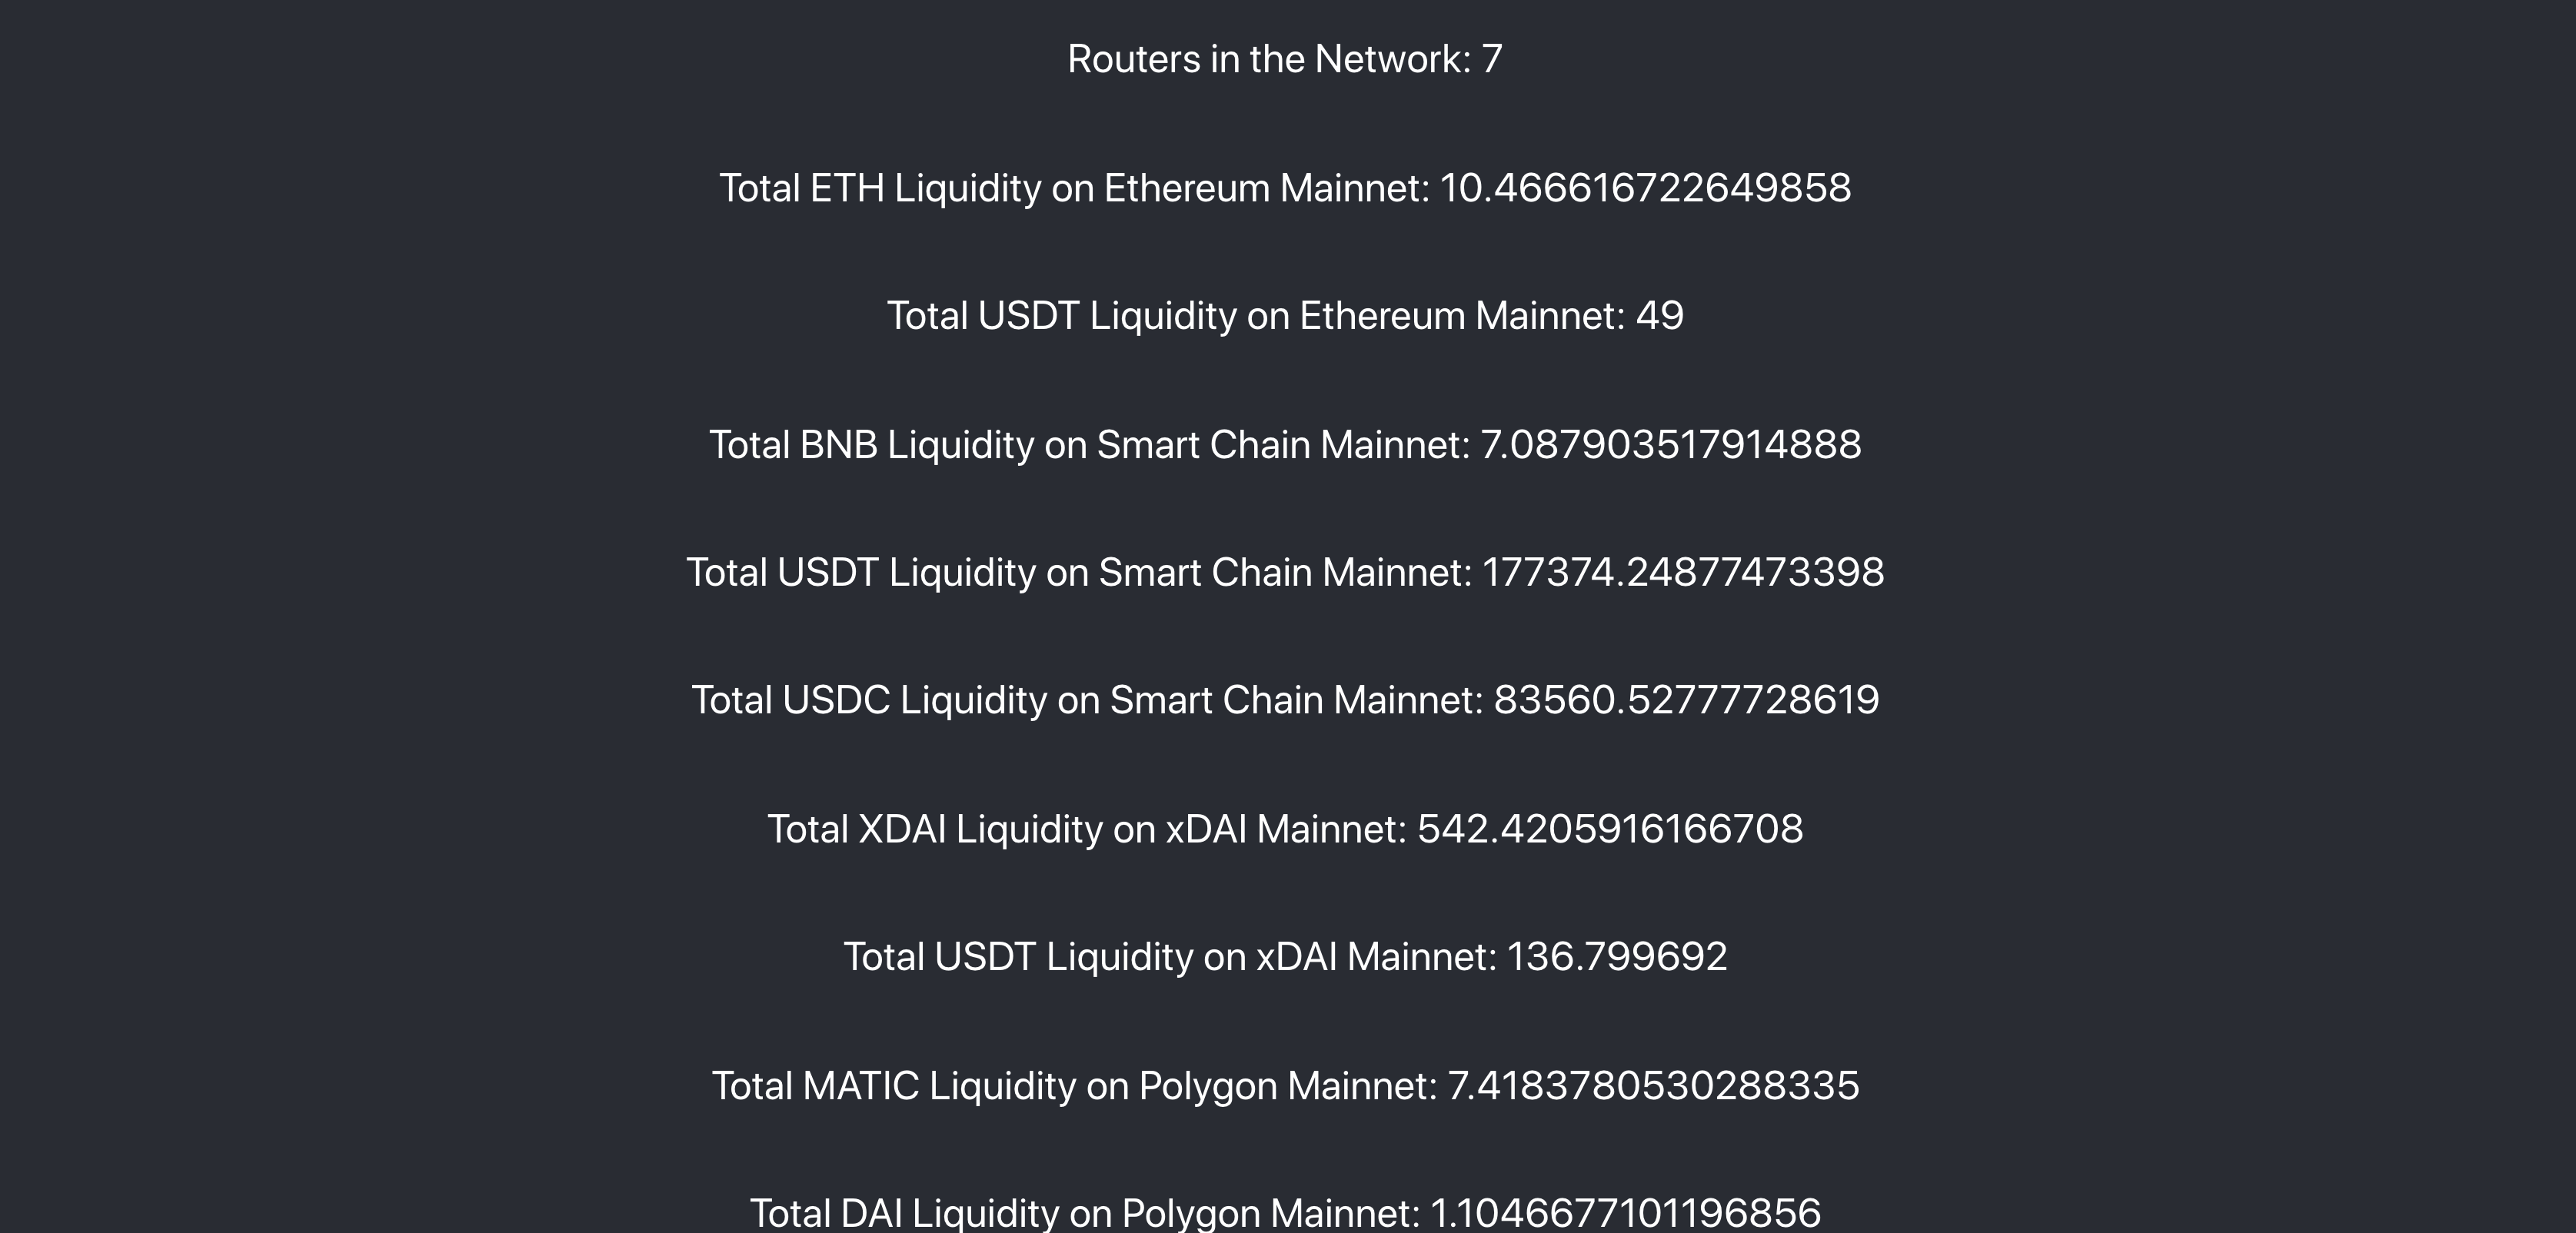 Global Router Metrics for Connext